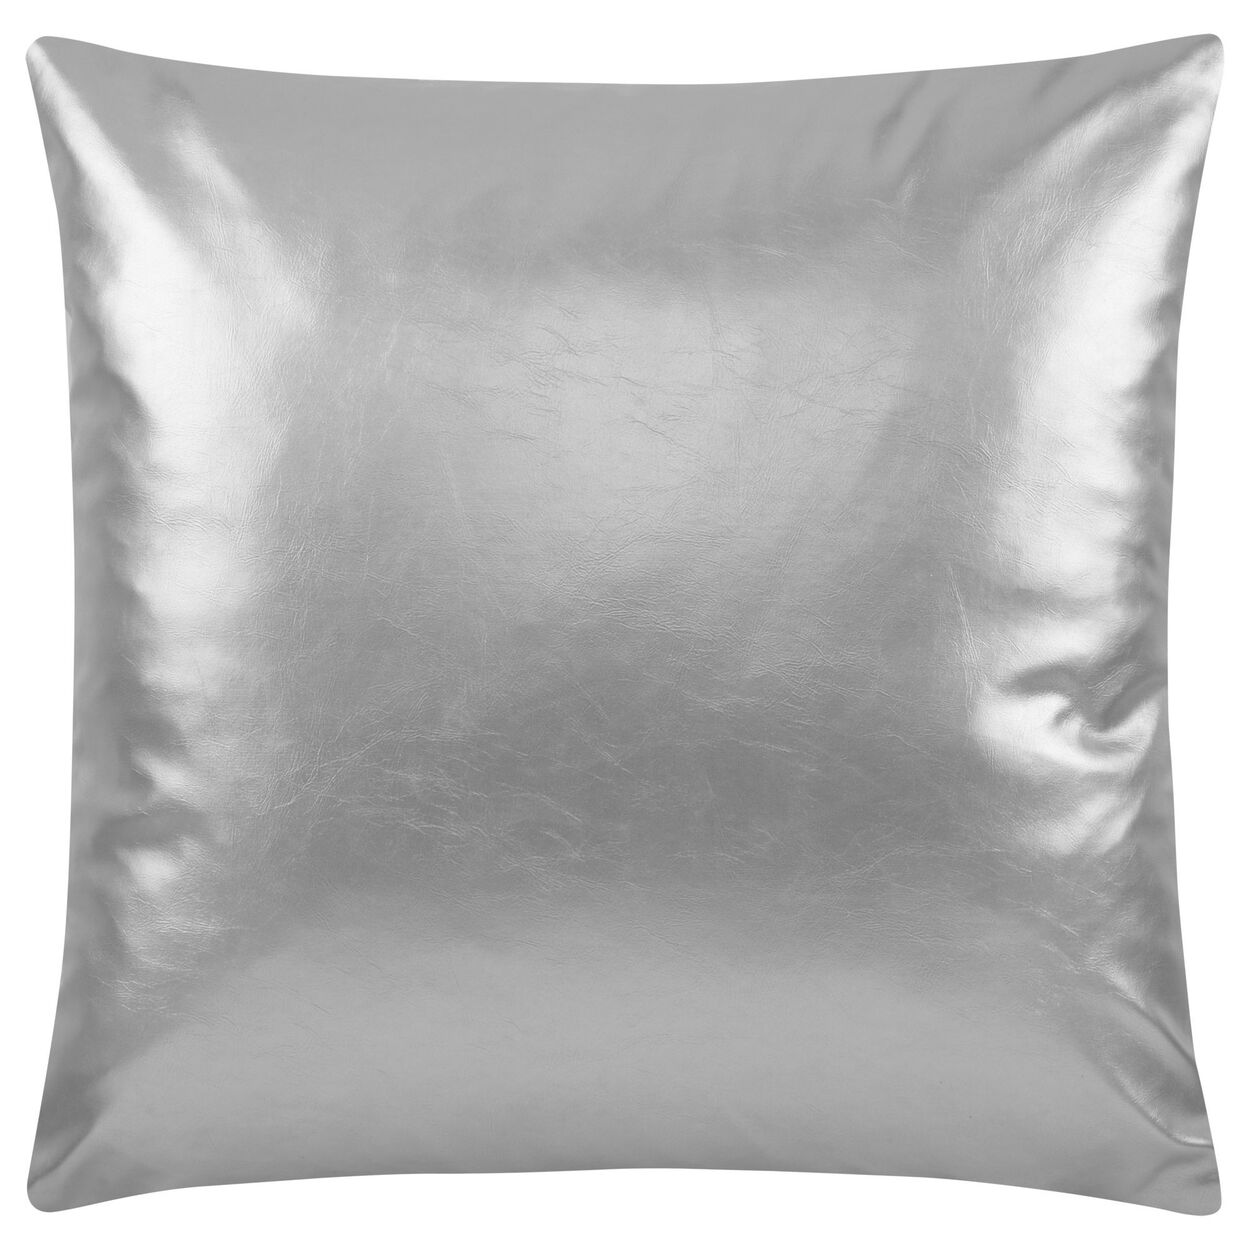 "Chill Marbled Decorative Pillow 18"" X 18"""